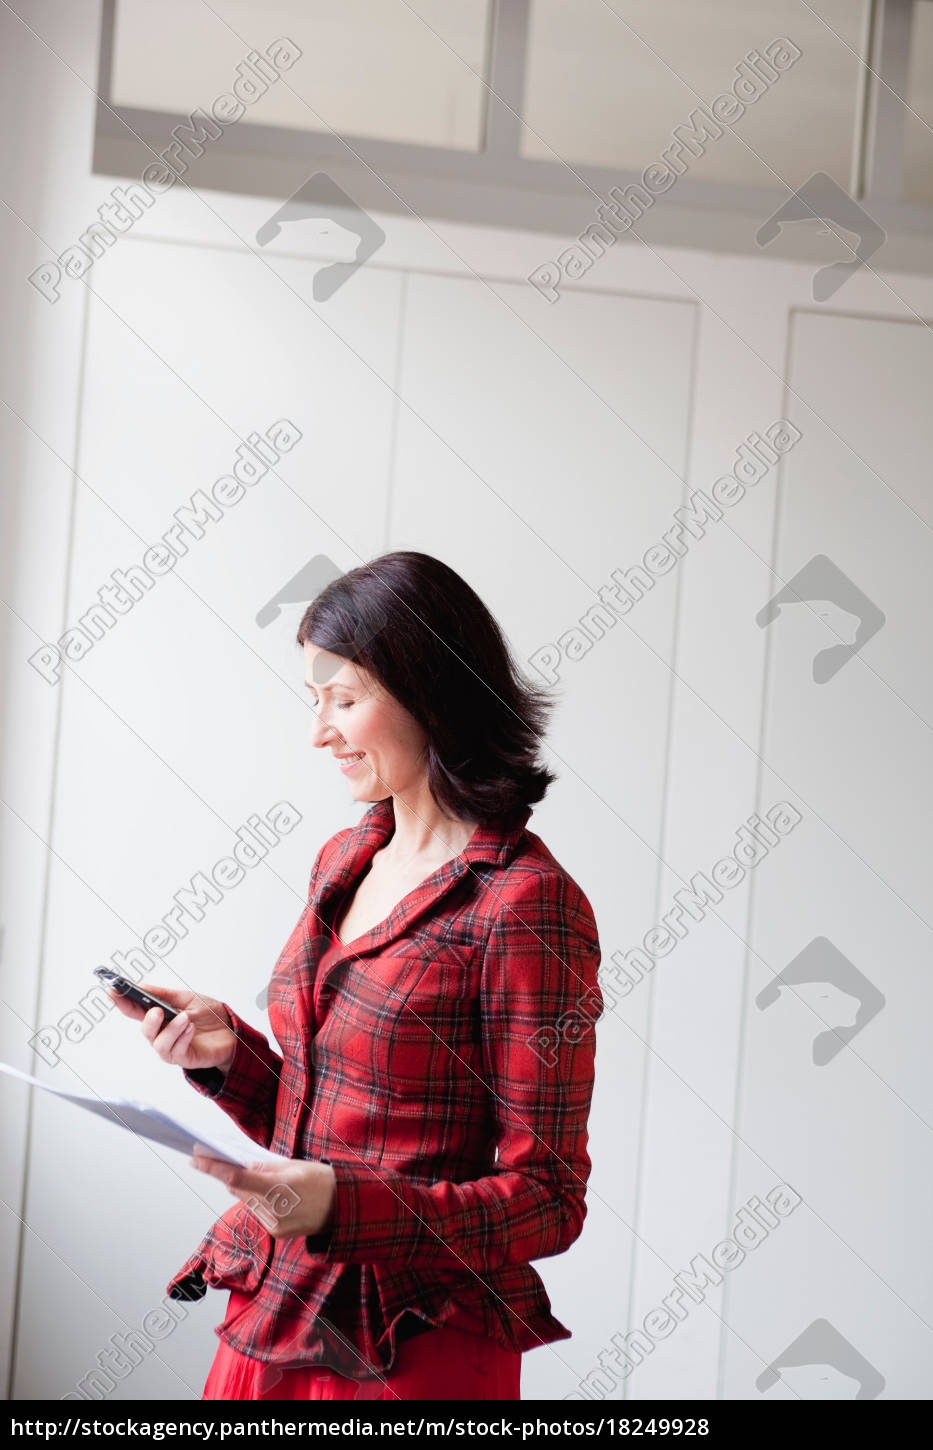 woman, using, cell, phone - 18249928